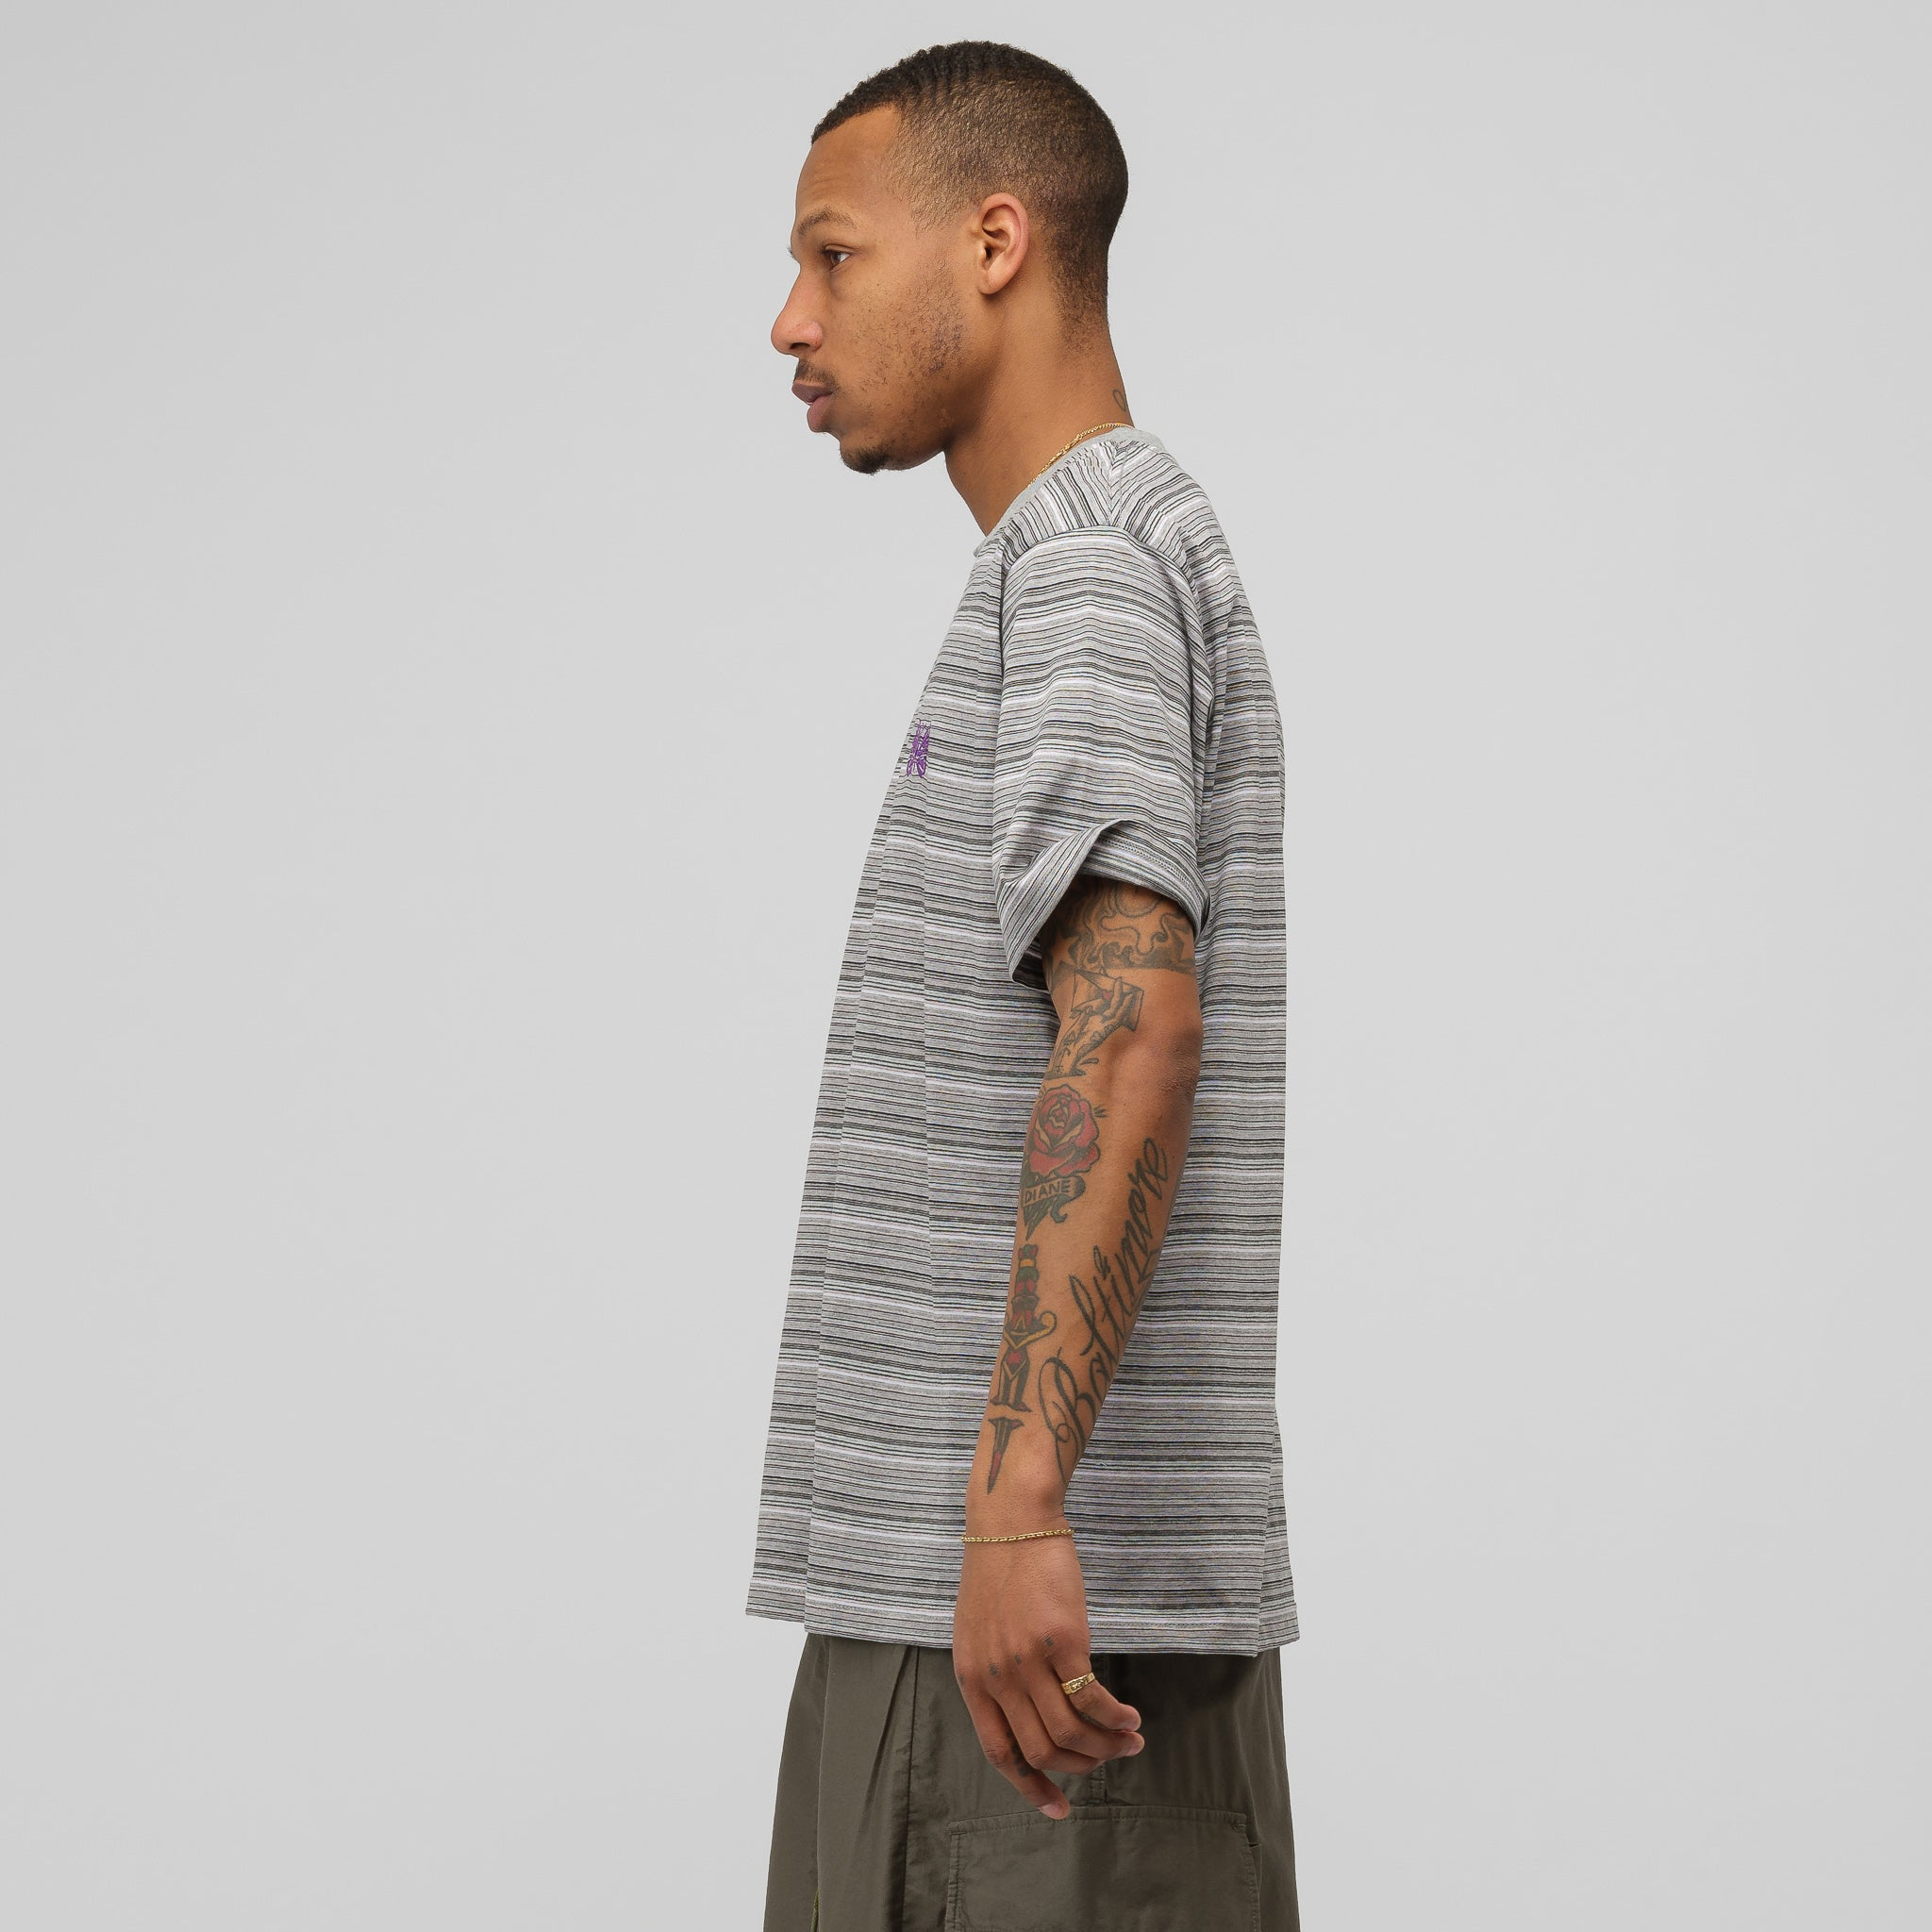 Papillon Short Sleeve T-Shirt in Grey